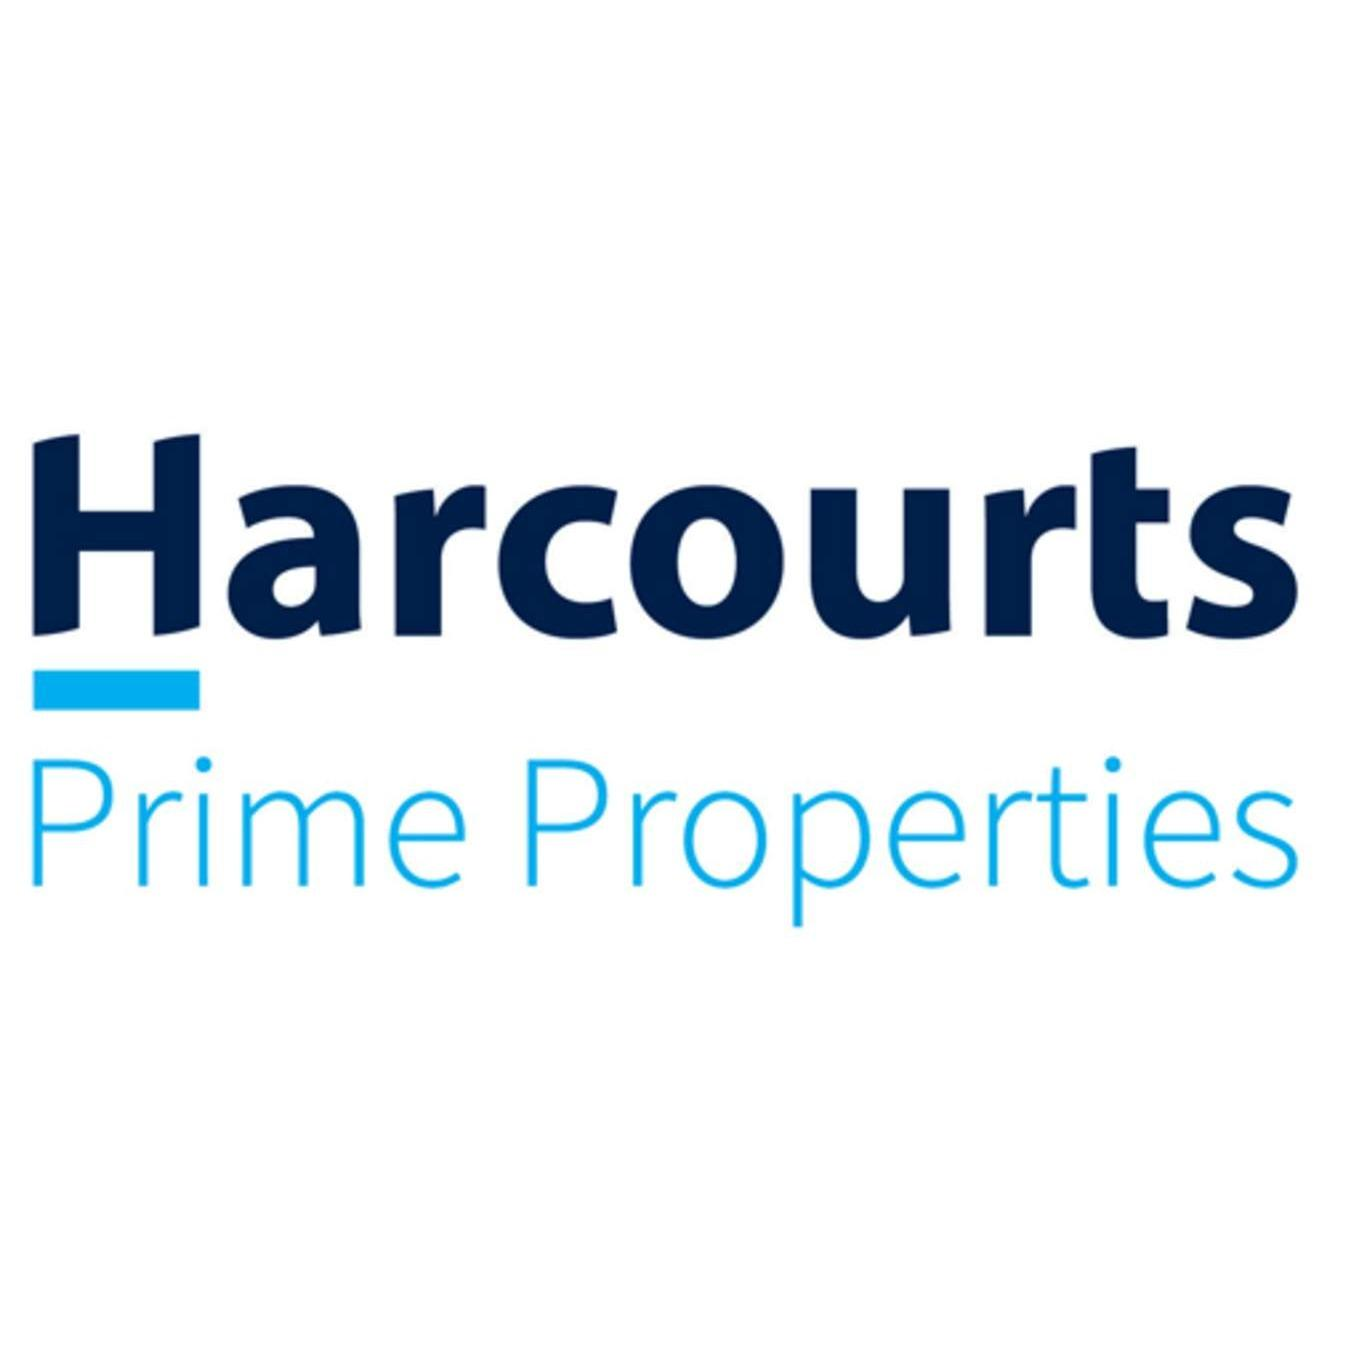 DaCosta Properties - Harcourts Prime Properties image 0